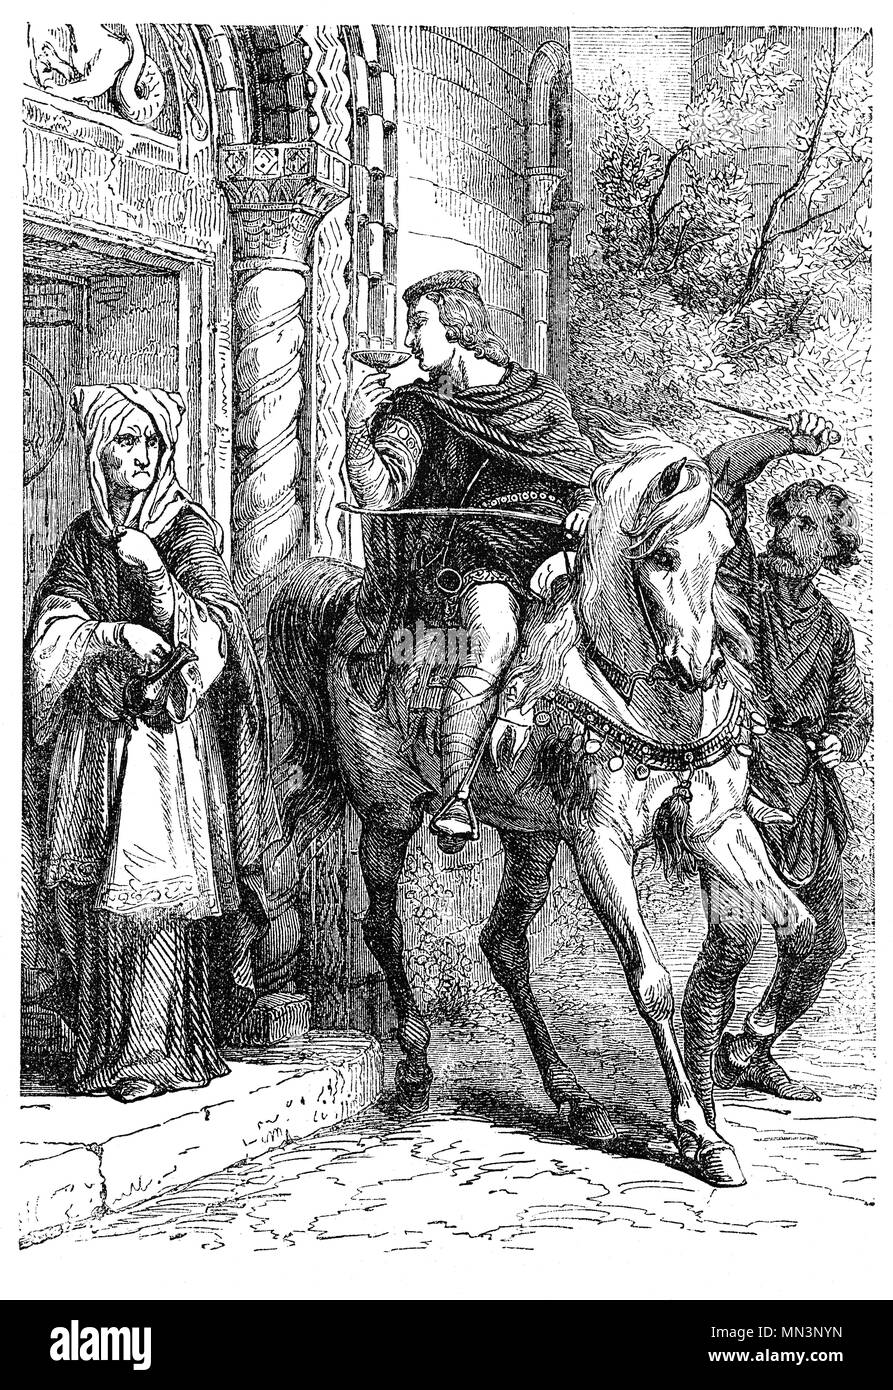 Edward the Martyr (962 – 978) was King of England from 975 until murdered in 978. He was the eldest son of King Edgar the Peaceful but on Edgar's death, some supported Edward's claim to be king, others his younger half-brother Æthelred the Unready. Edward was chosen as king. He was murdered in the evening of 18 March 978, while visiting Ælfthryth and Æthelred, probably at or near the mound on which the ruins of Corfe Castle now stand. There are several possible motives behind Edward's killing with Æthelred as the main suspect. - Stock Image